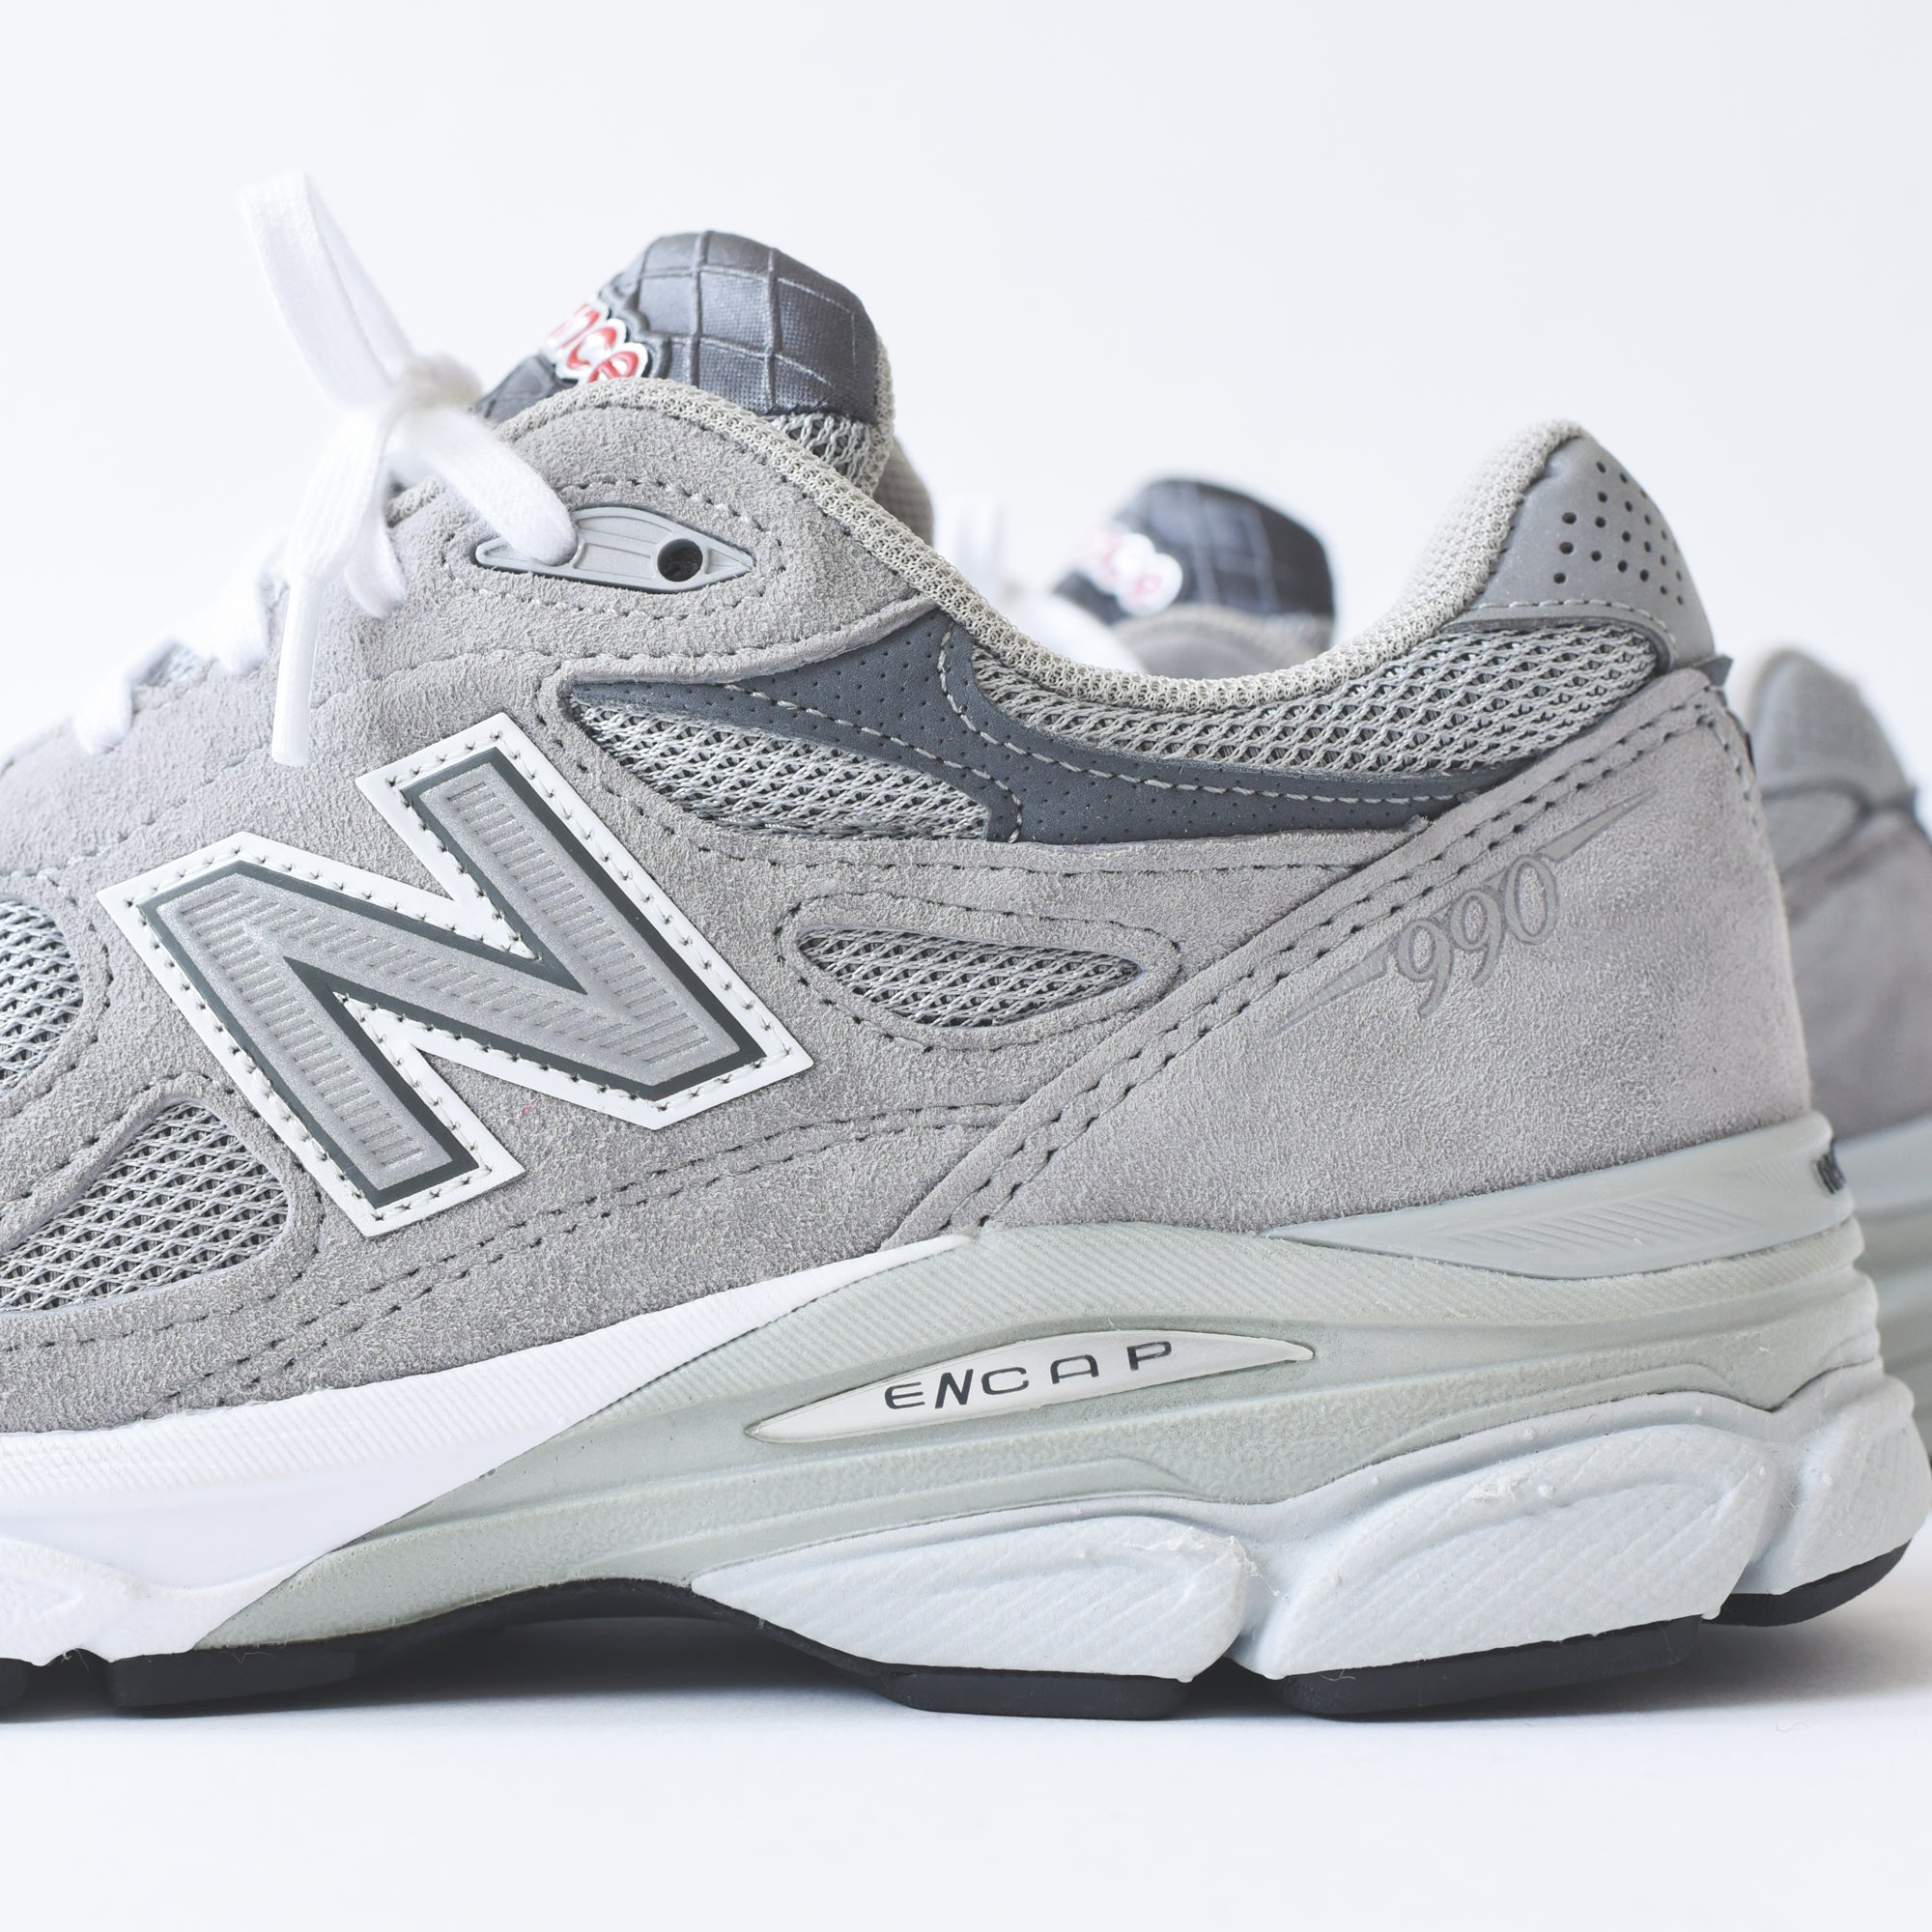 shop for authentic fashion styles world-wide renown New Balance 990 v3 - Grey / White